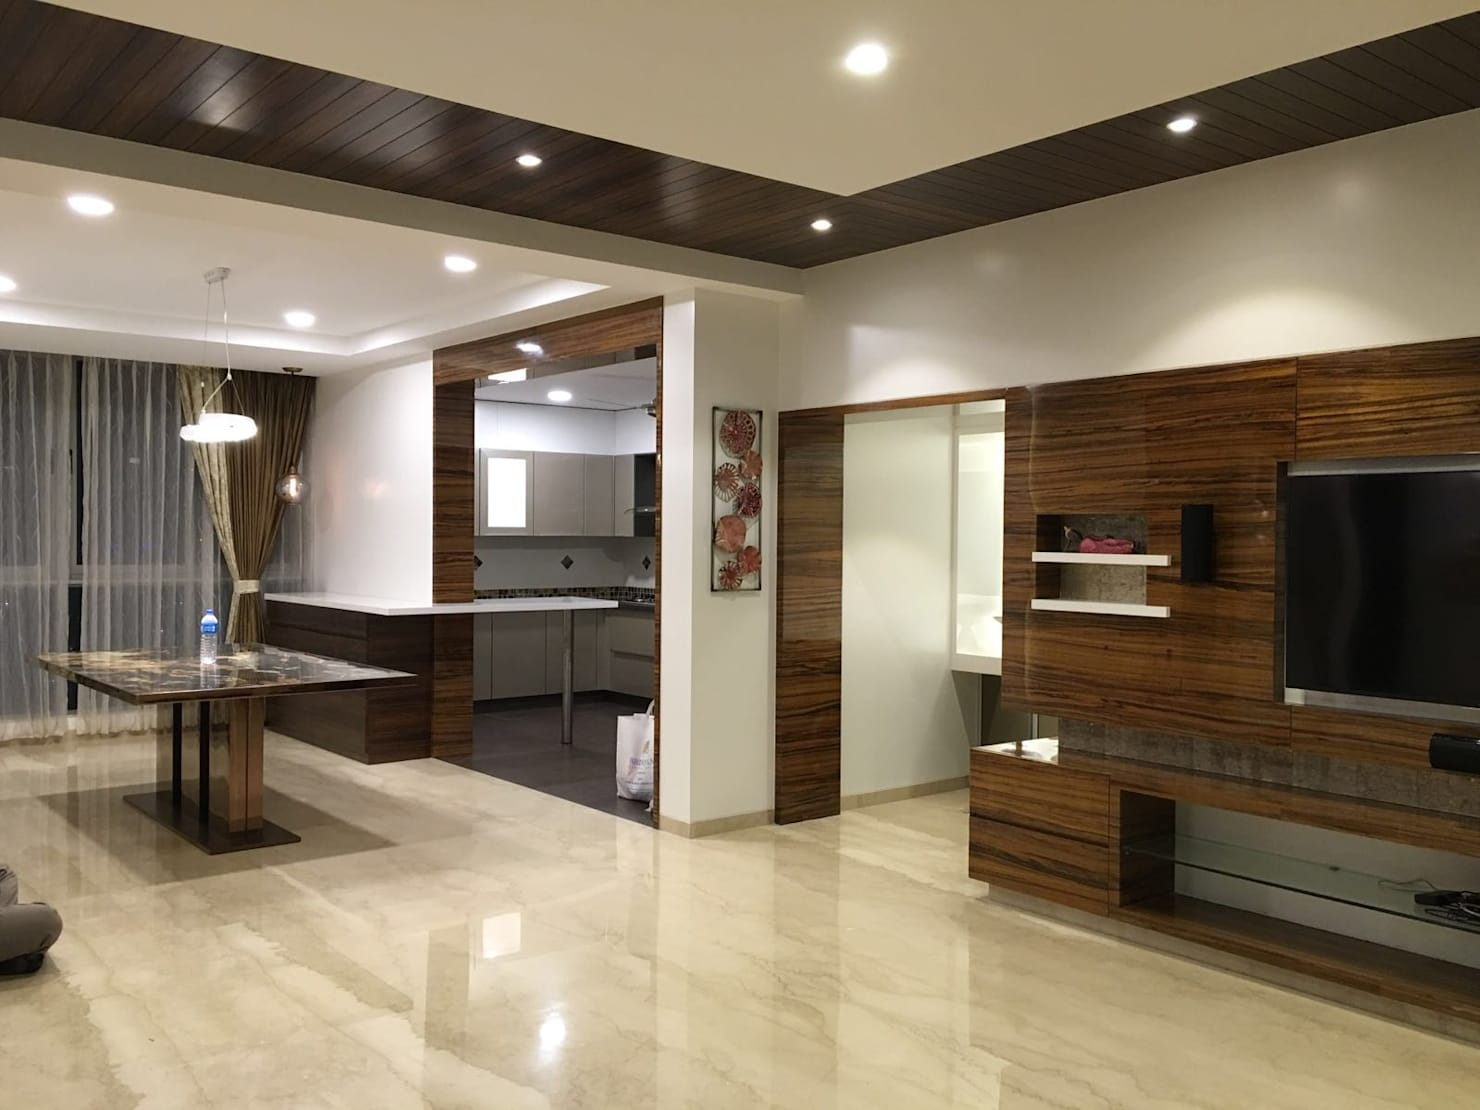 11 Fabulous Interior's Pictures of a Bangalore Apartment